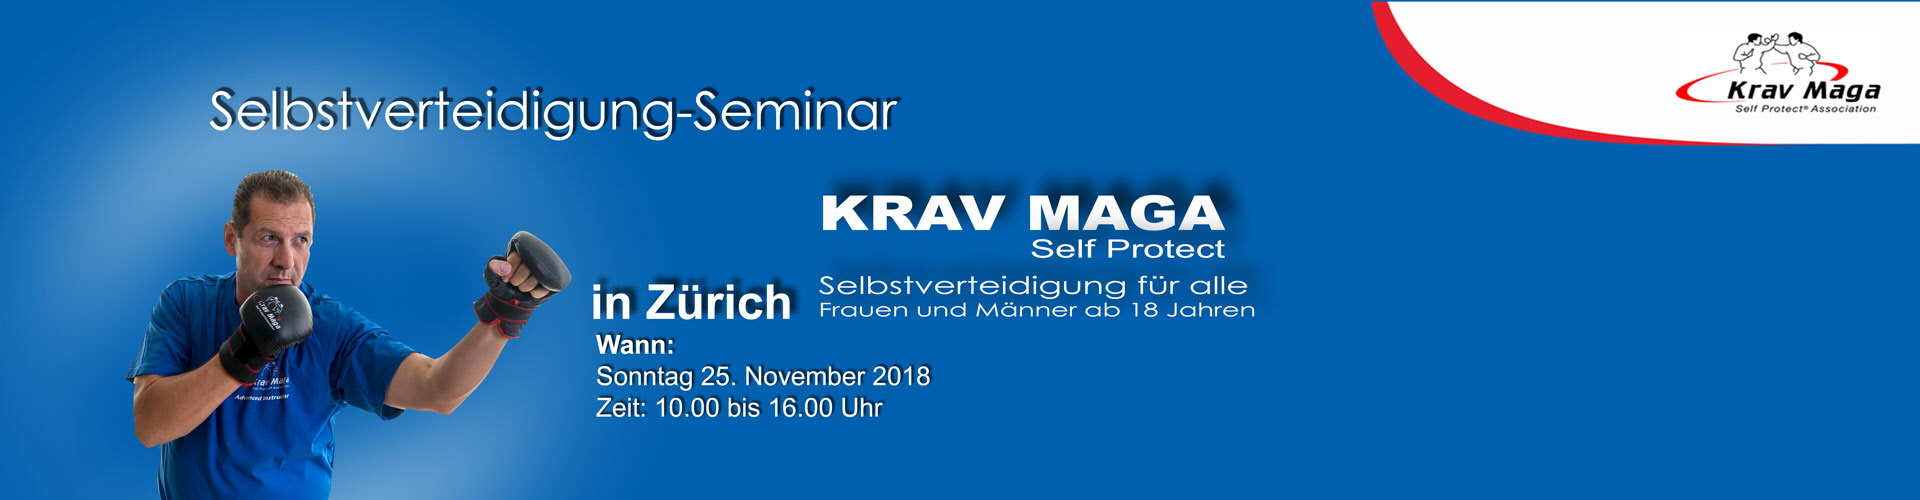 Krav Maga Workshop Zürich